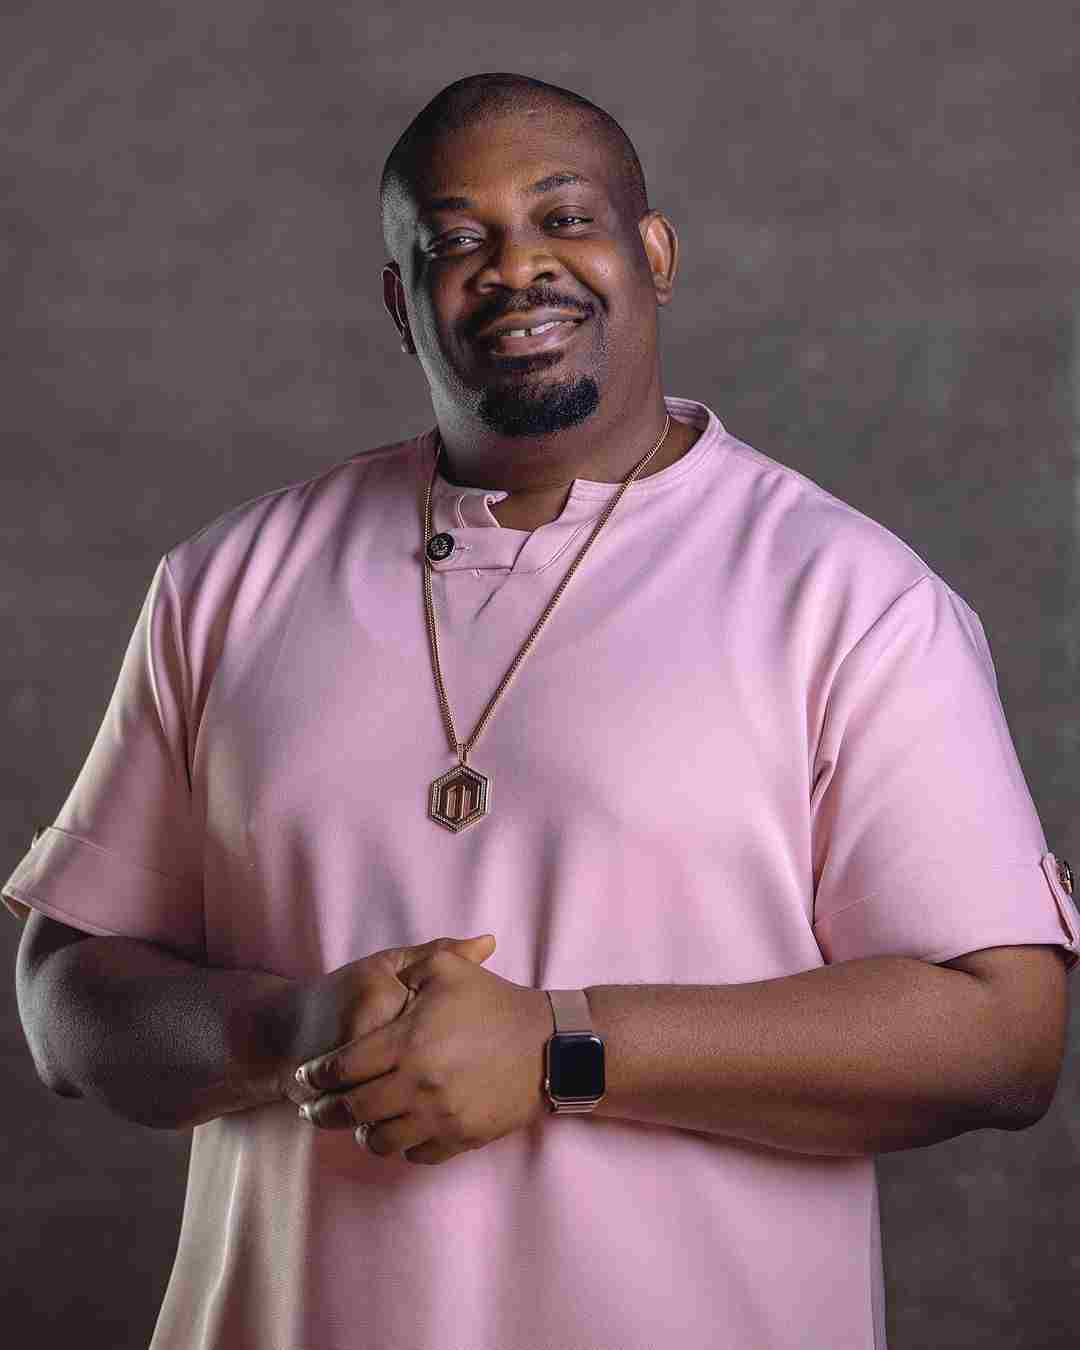 Nigerians don't support Local Celebrities - Don Jazzy laments